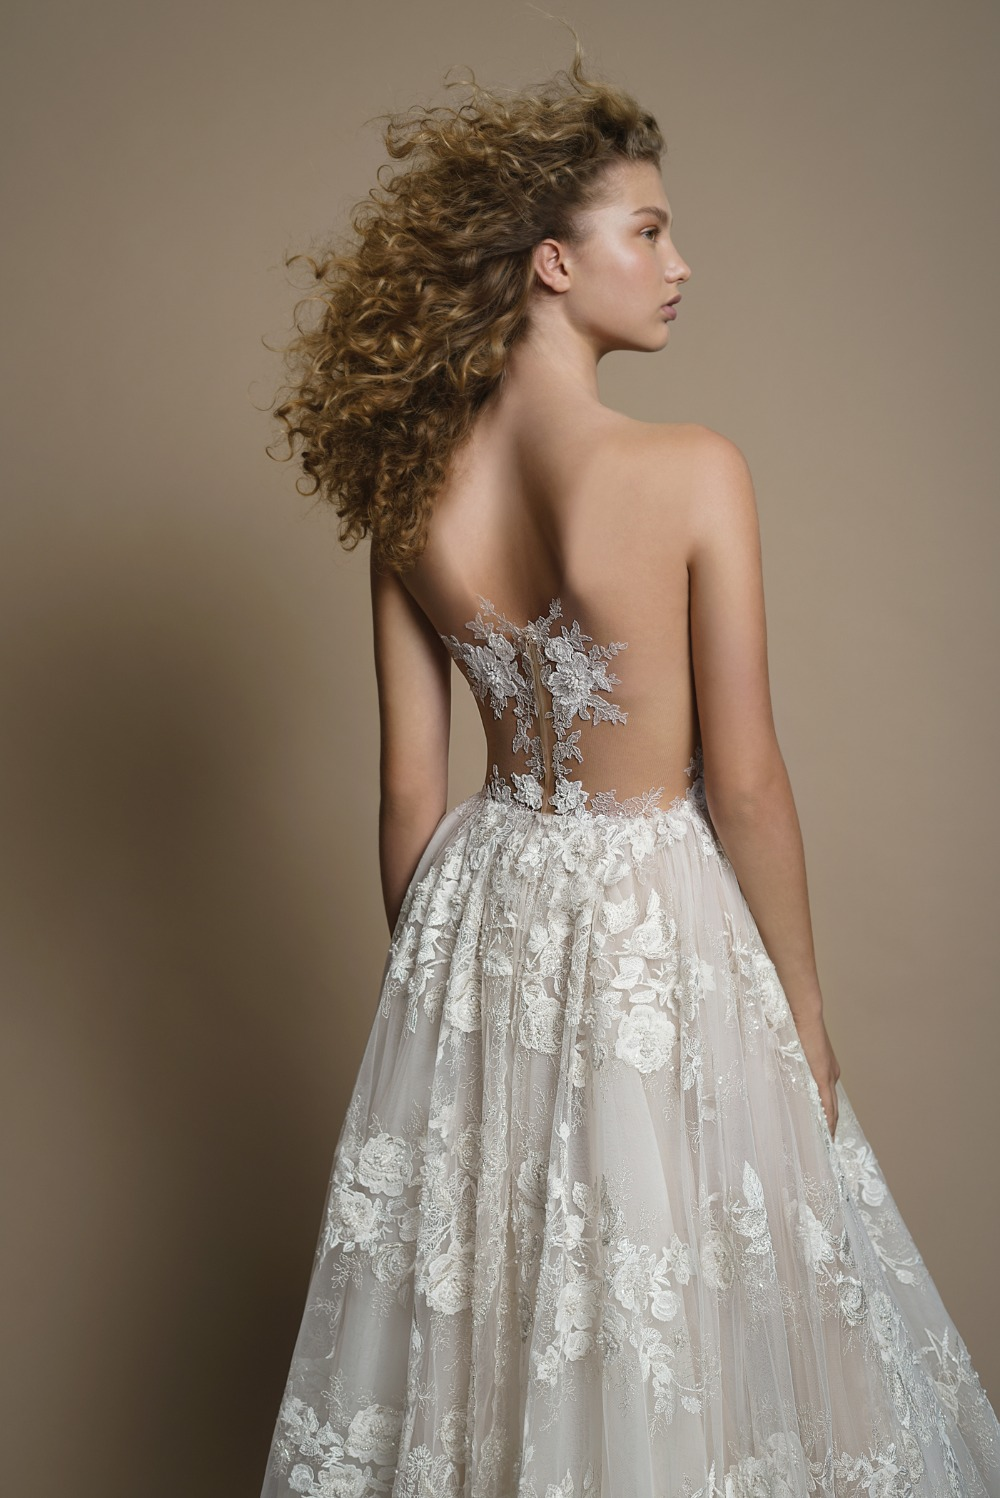 Elaborate lace ballgown featuring a sheer corset with a sheer back from Galia Lahav